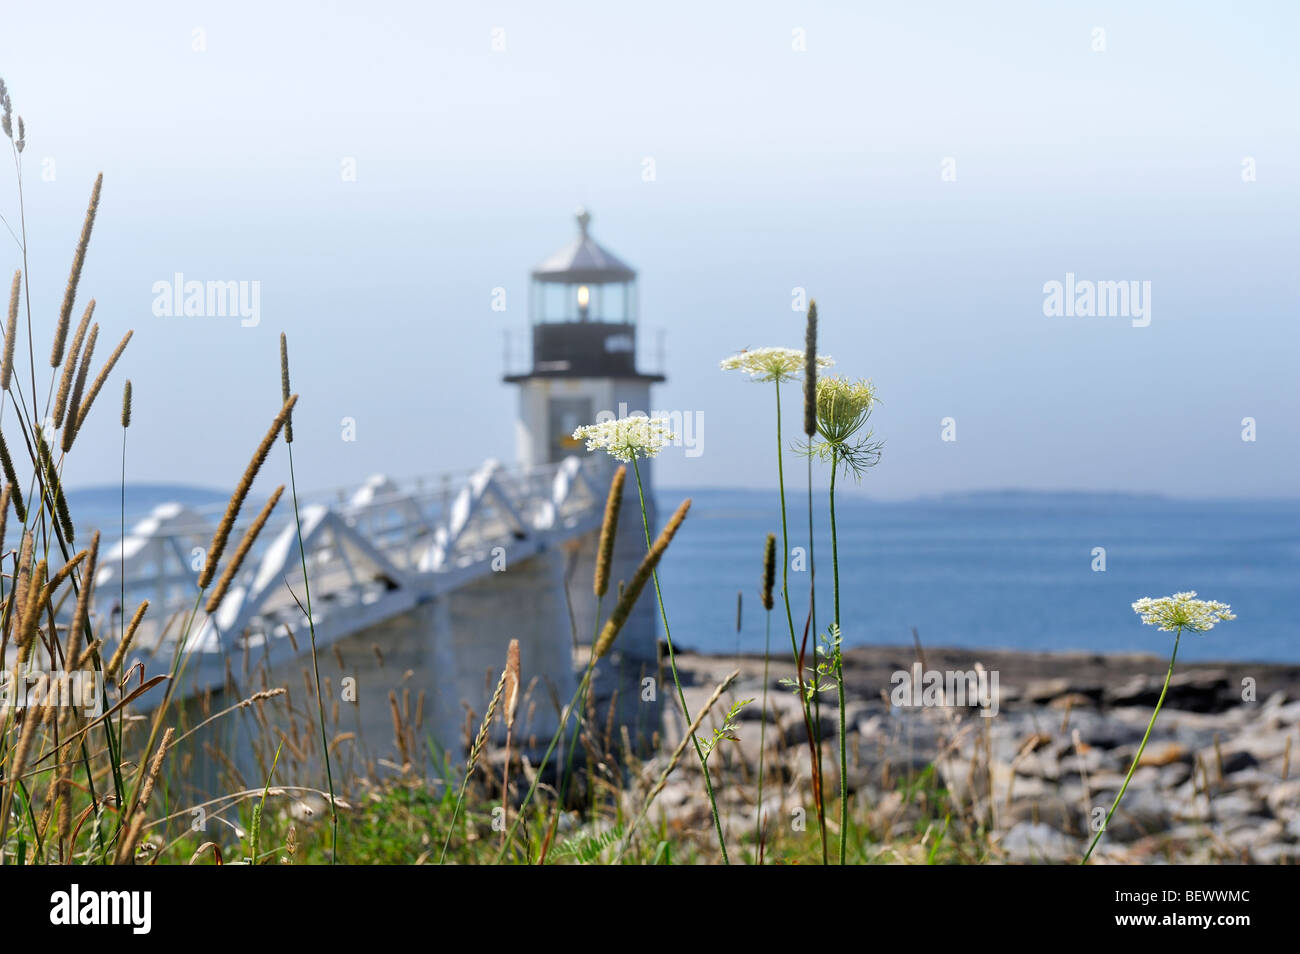 Marshall Point Lighthouse and Penobscot Bay, Port Clyde, Maine, USA seen through  wild grasses, Queen-Anne's Lace Stock Photo